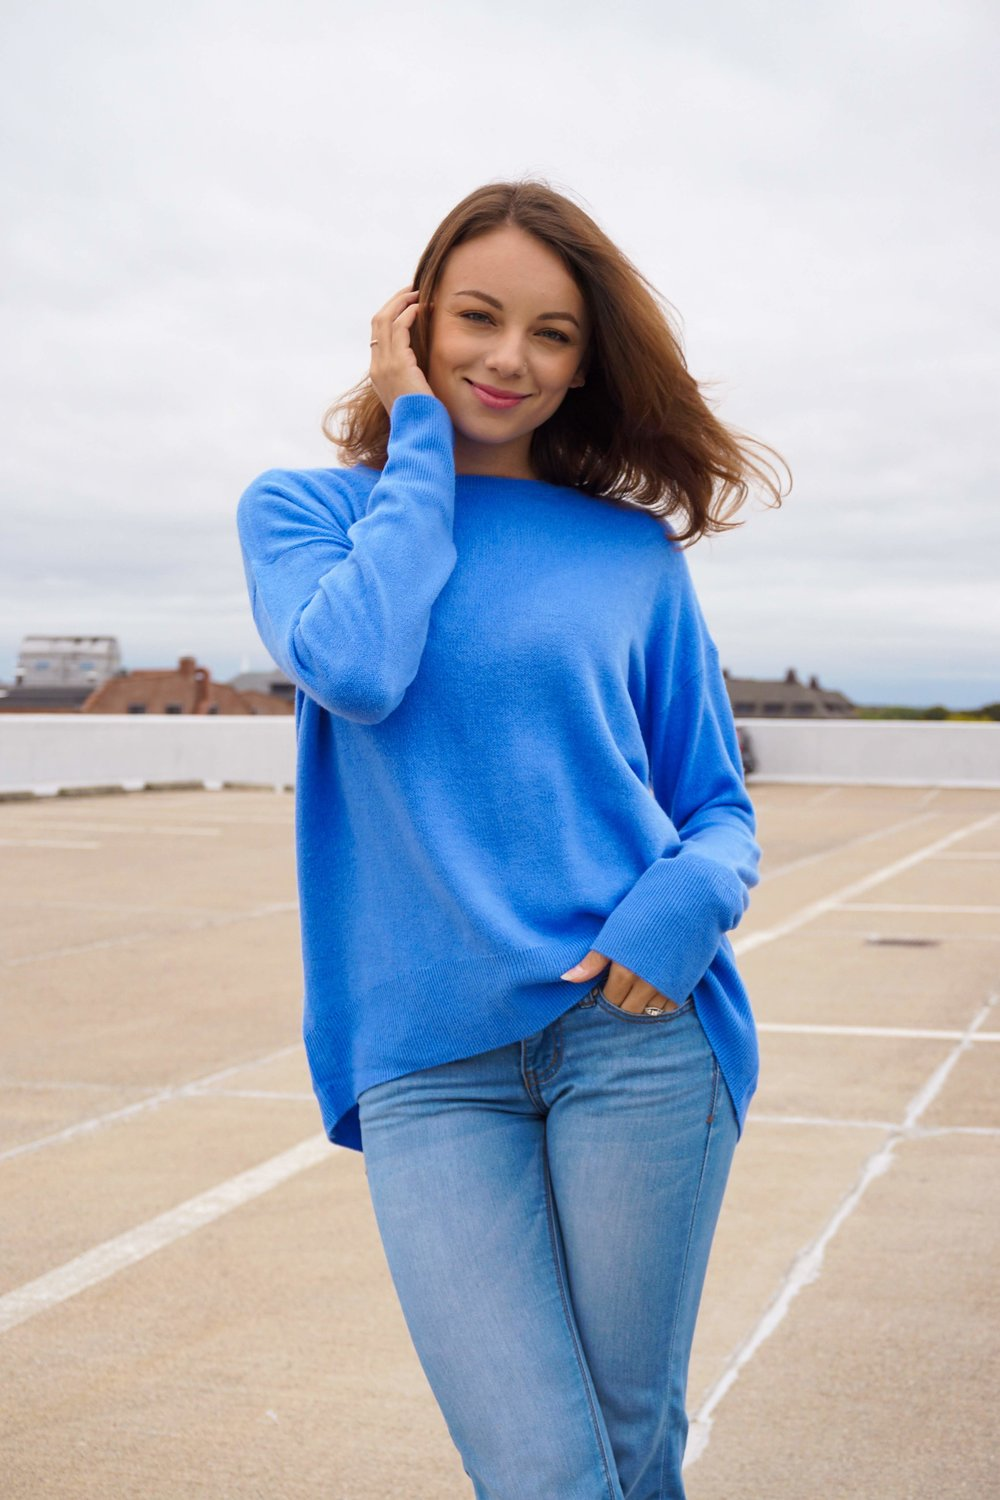 A close up of a girl looking at the camera, wearing a blue sweater, blue jeans.